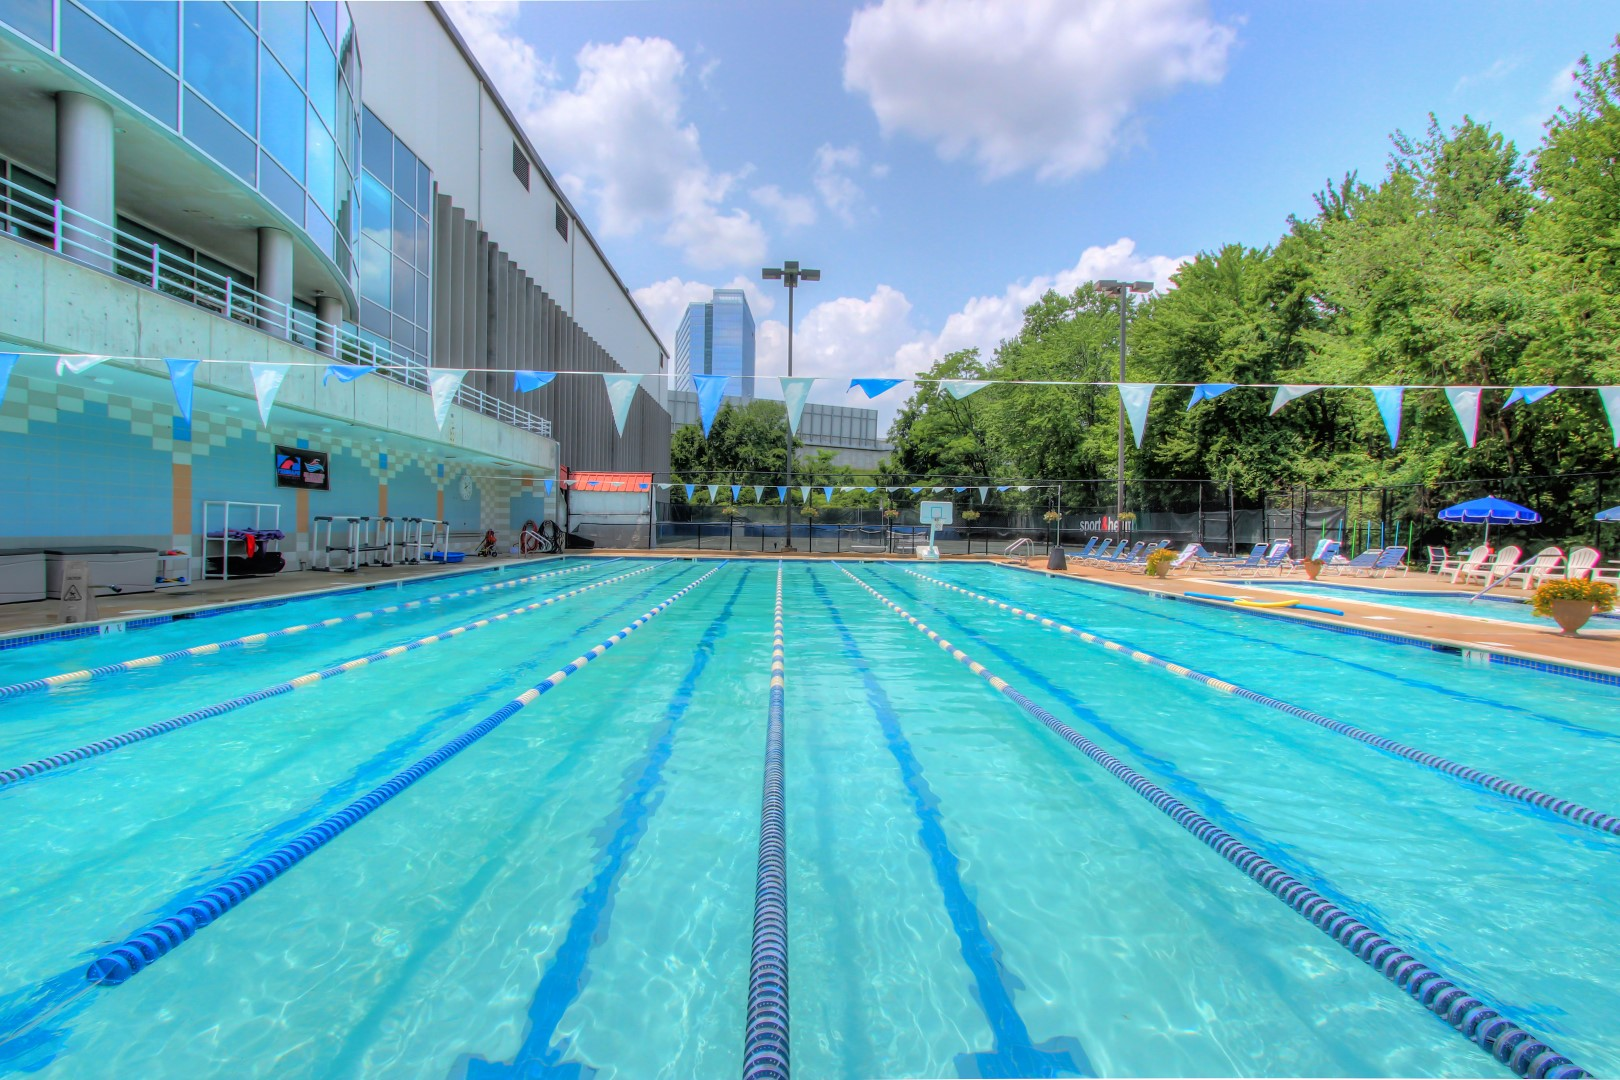 McLean Sport&Health Pool